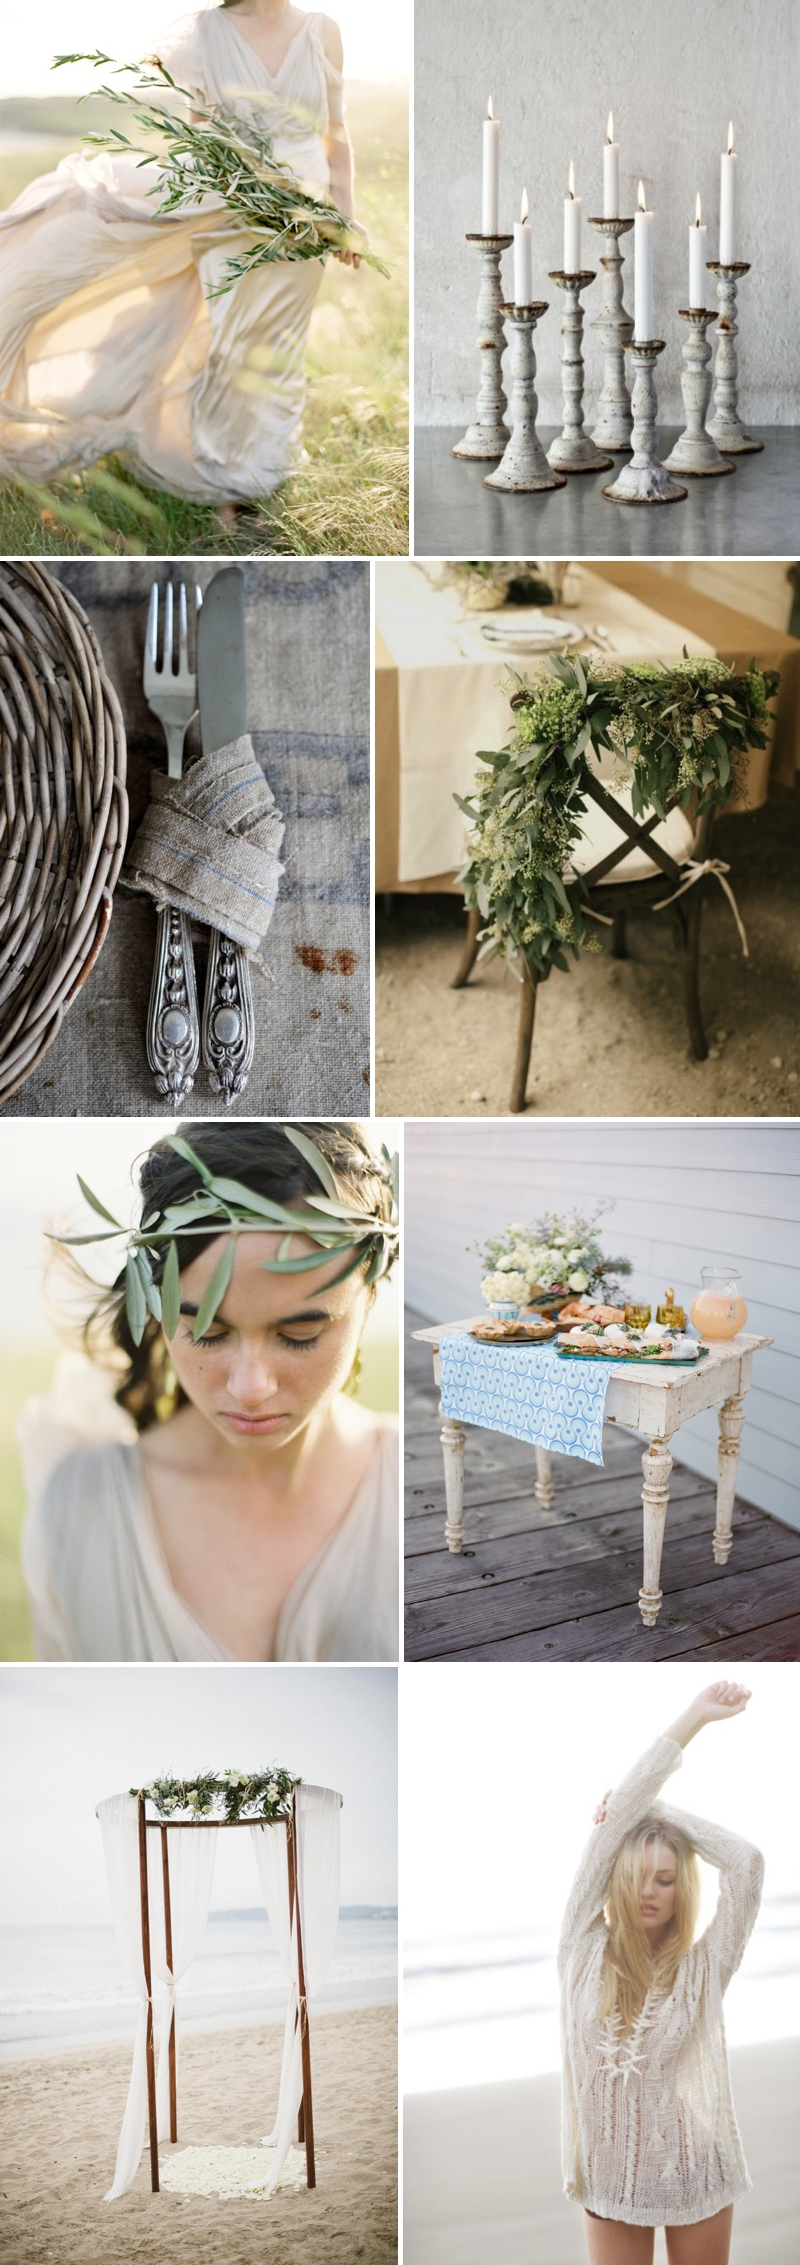 Mermaid inspiration for your wedding day_0227